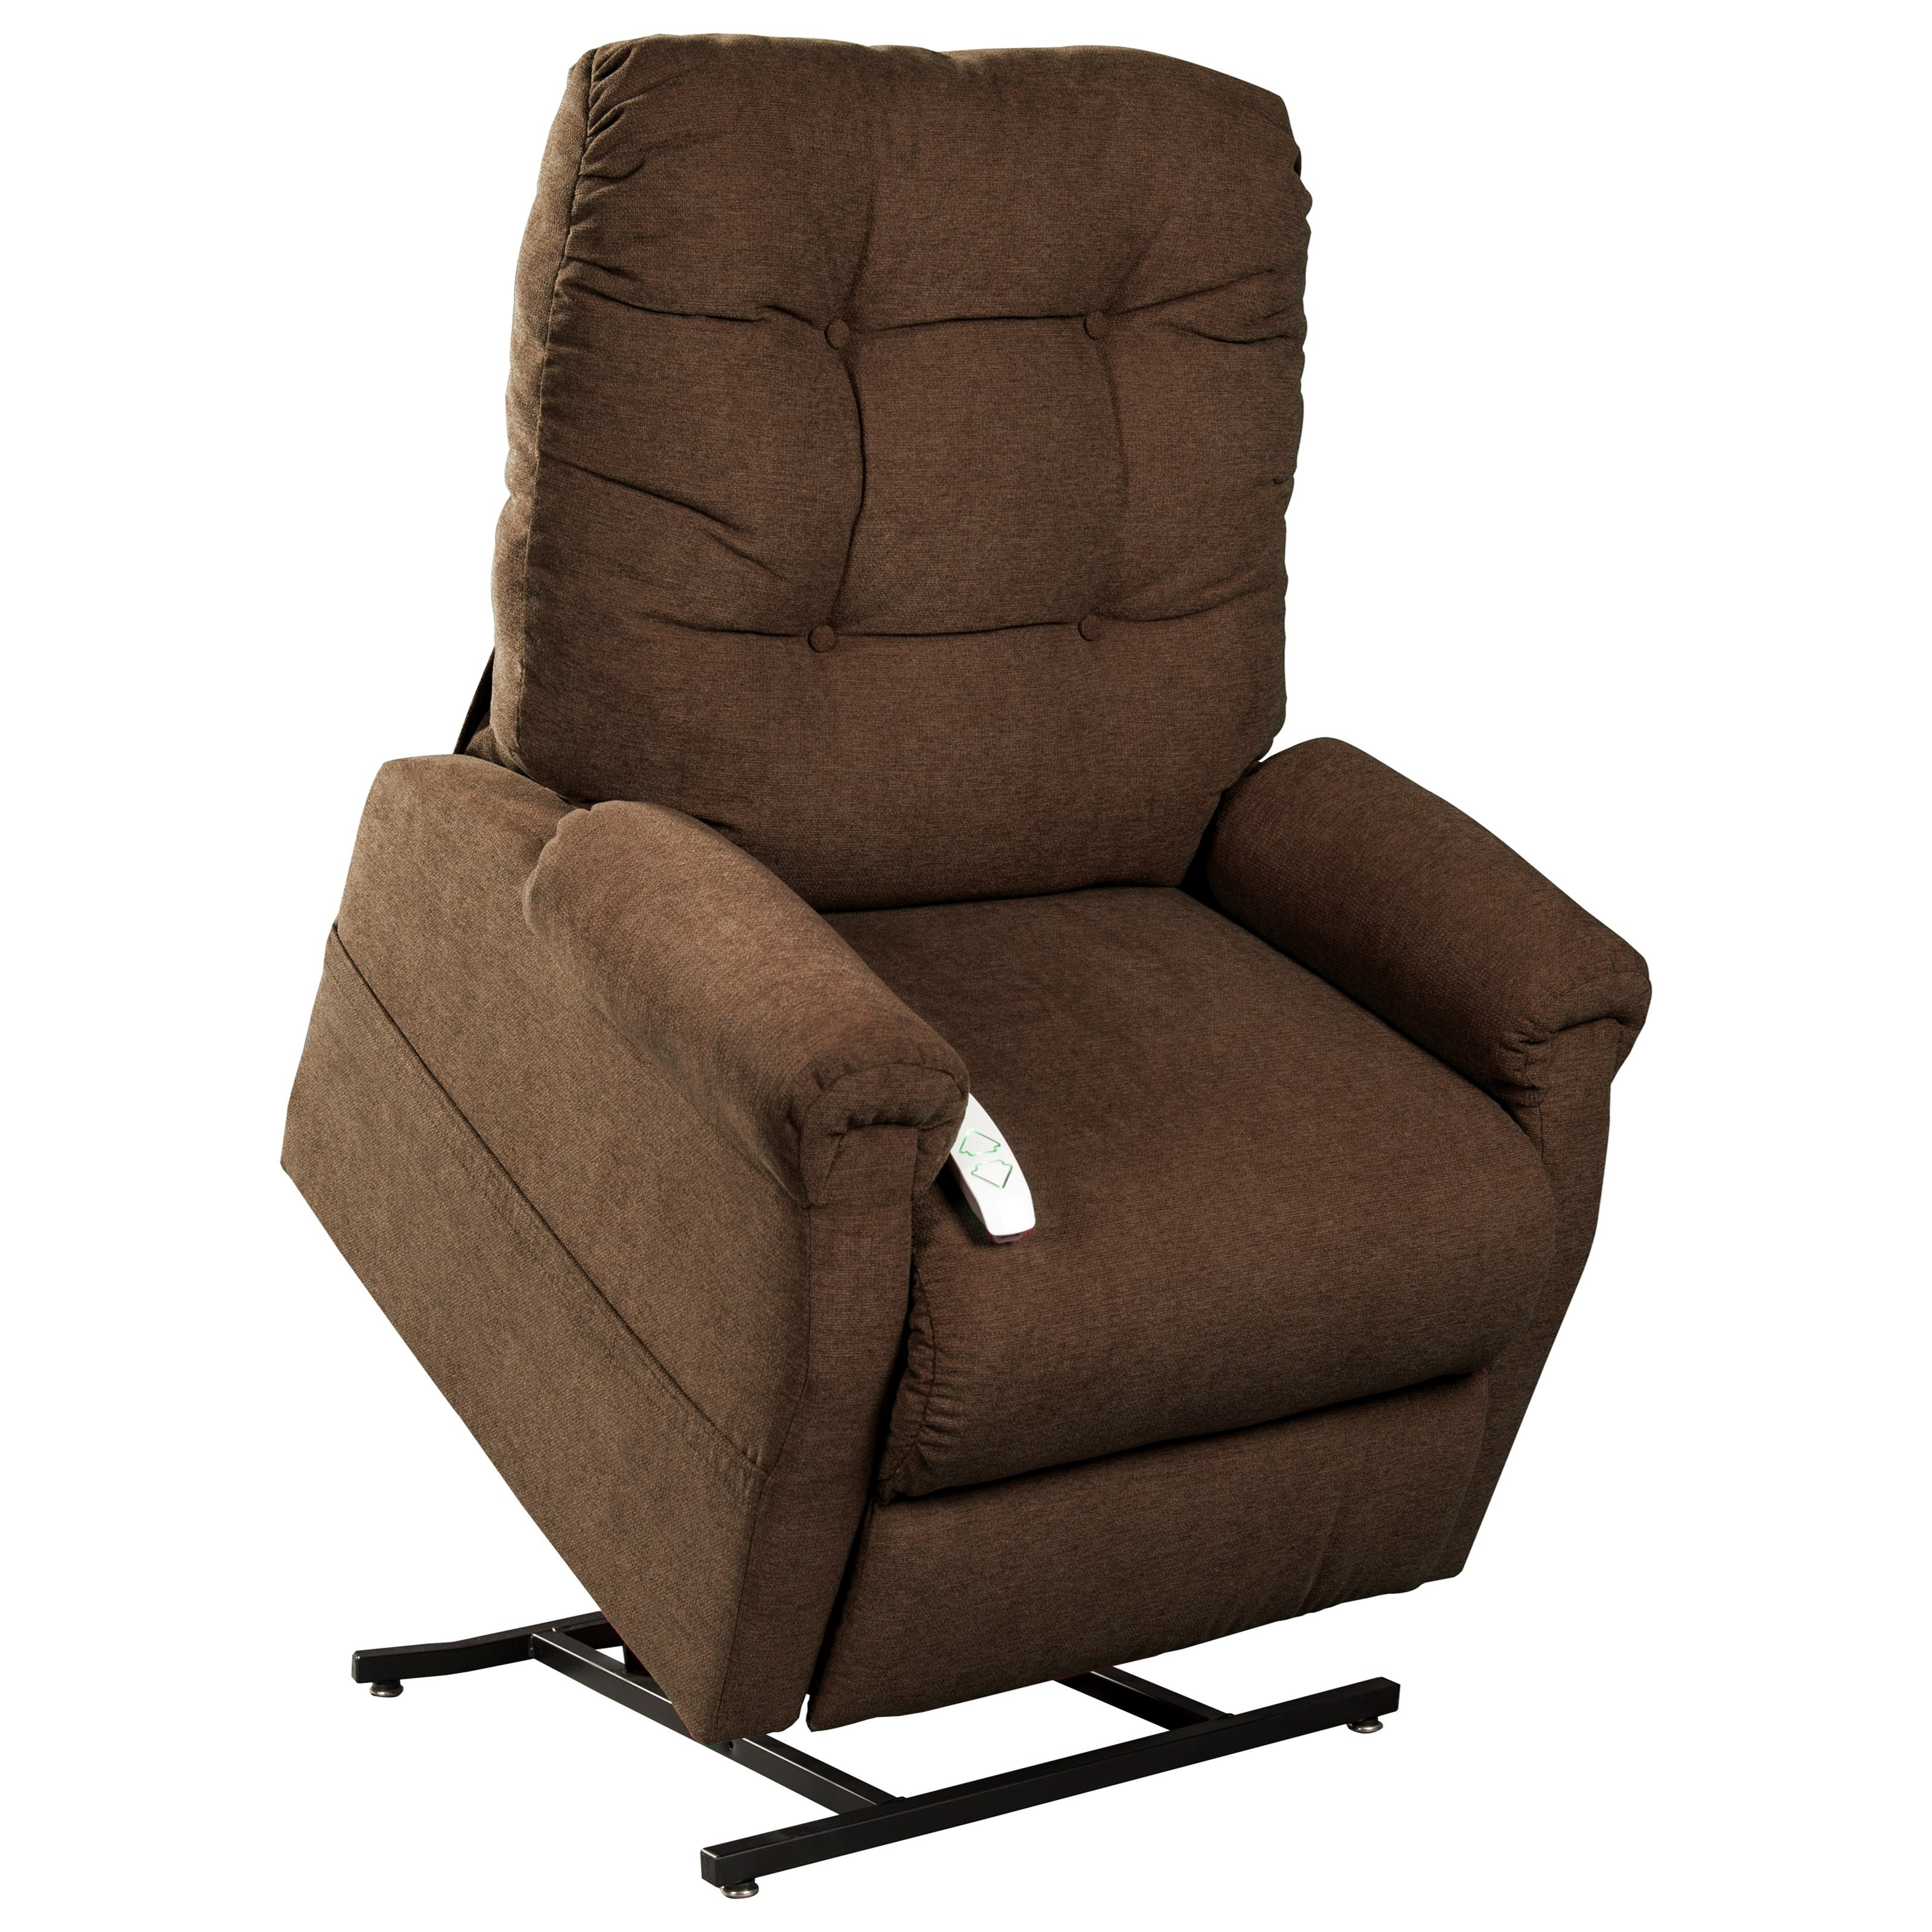 Picture of: Windermere Motion Lift Chairs 1324567 3 Position Reclining Lift Chair Dunk Bright Furniture Lift Chairs